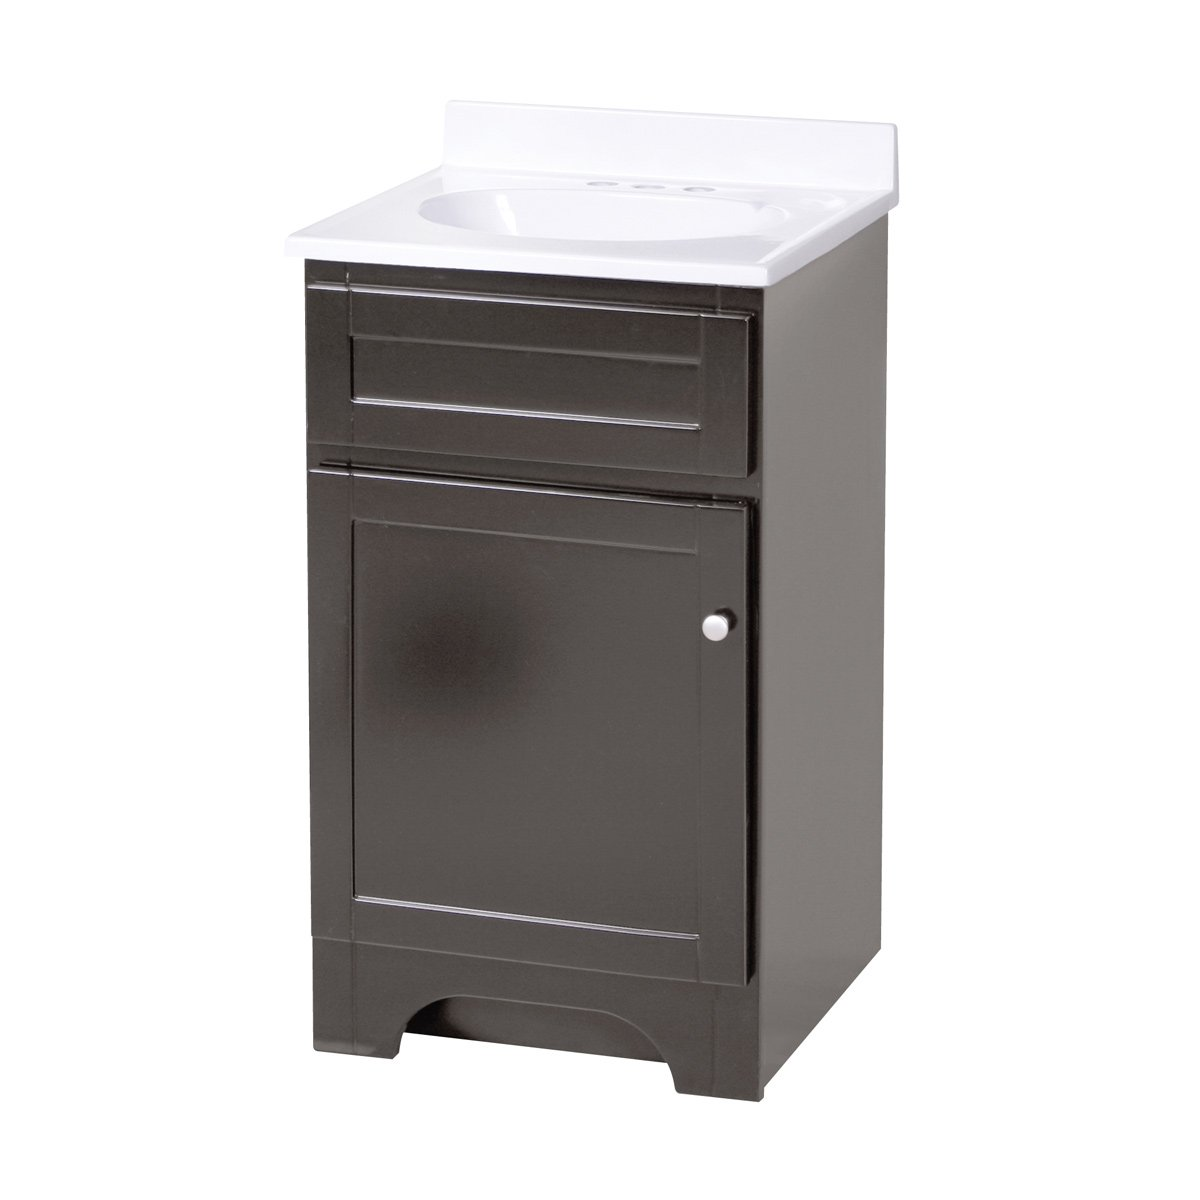 Foremost COEAT1816 Columbia 18 Inch Espresso Bath Vanity Combo   Bathroom  Vanities   Amazon.com